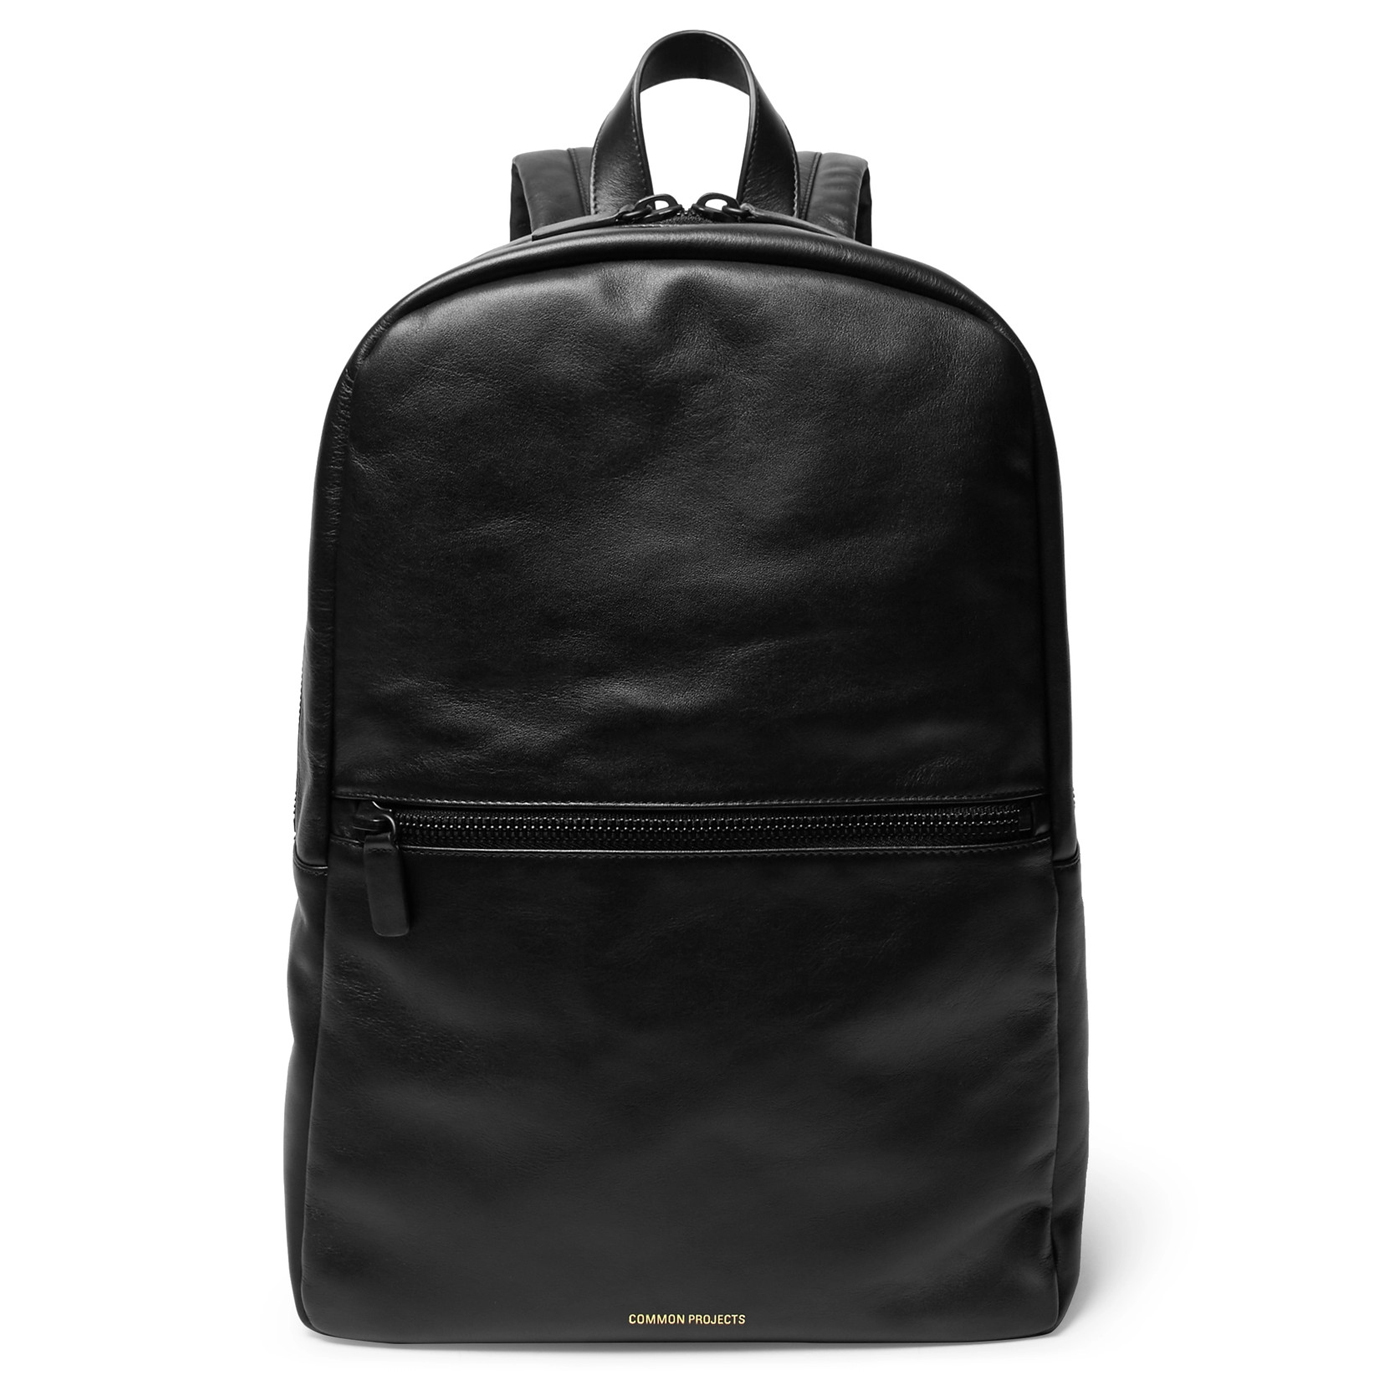 Style Mr Porter Sac Backpack Common Projects Cuir Noir